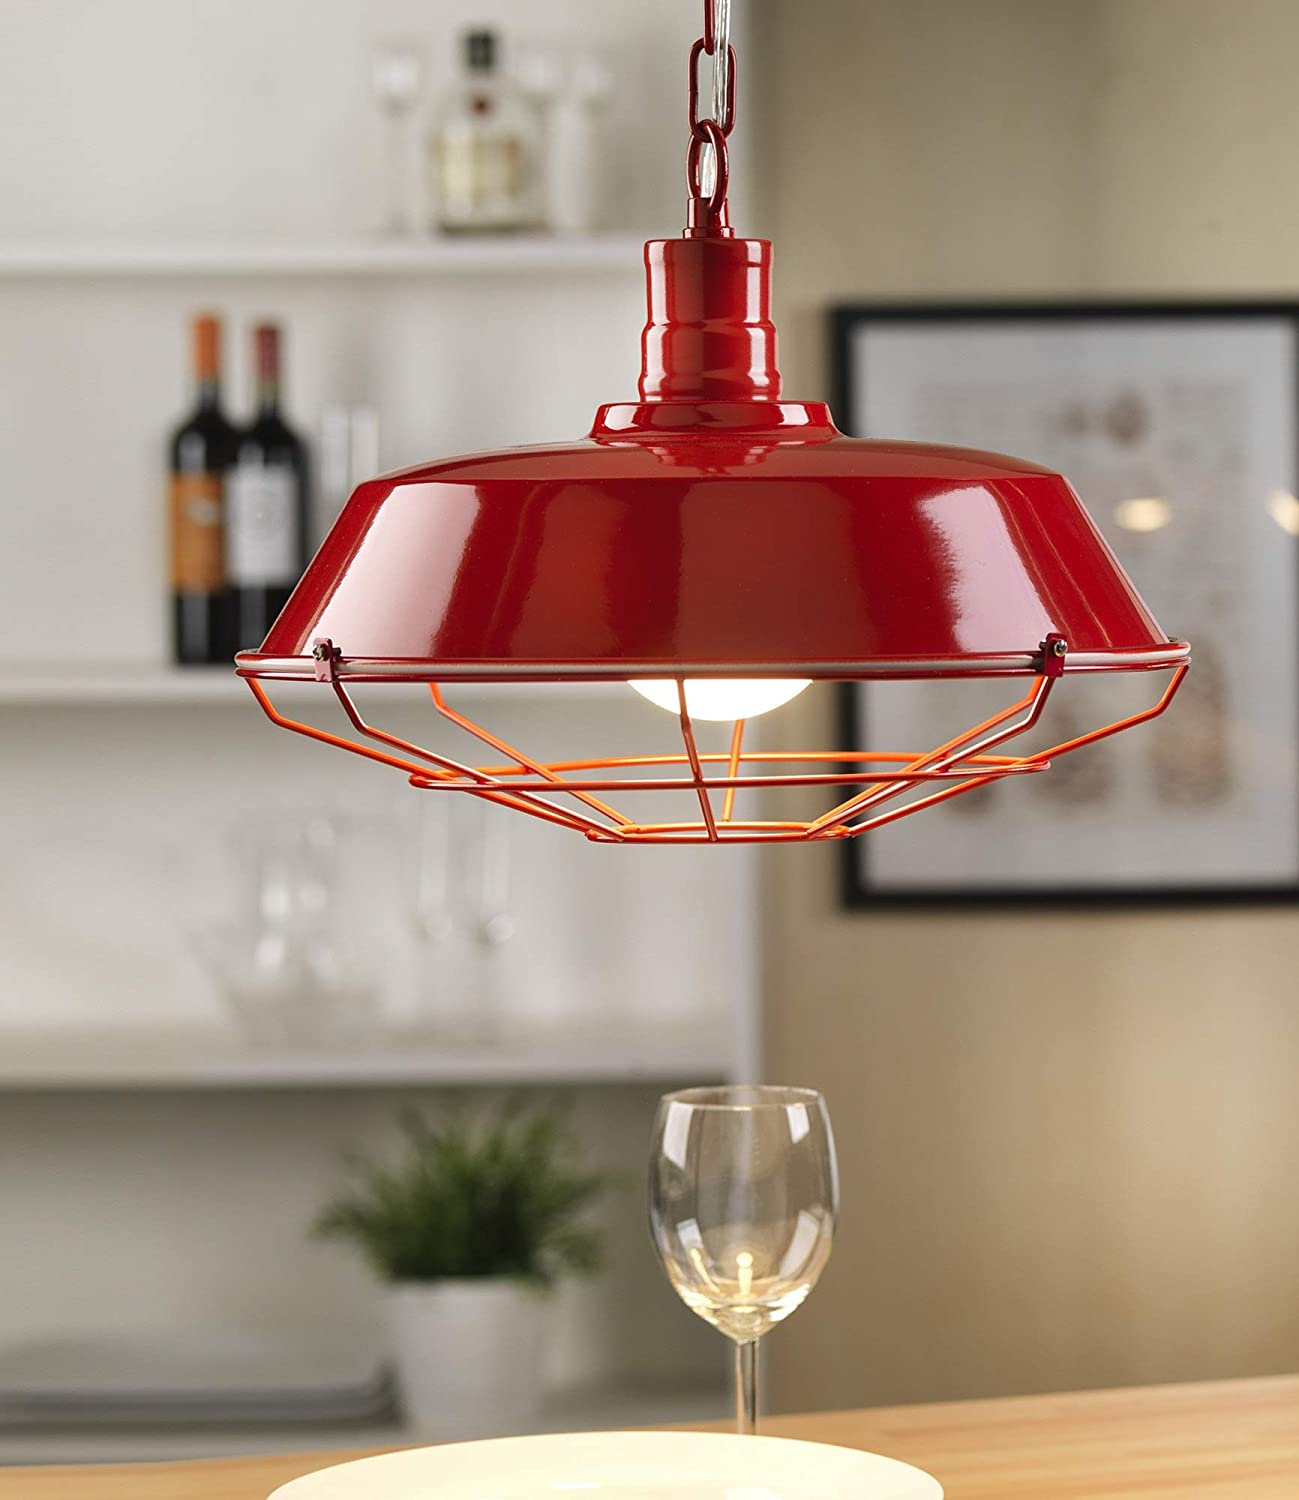 Dafnedesign.com - Ceiling lamp with Grid - Compatible with Class Bulb; A, A+, A++ - (UL)